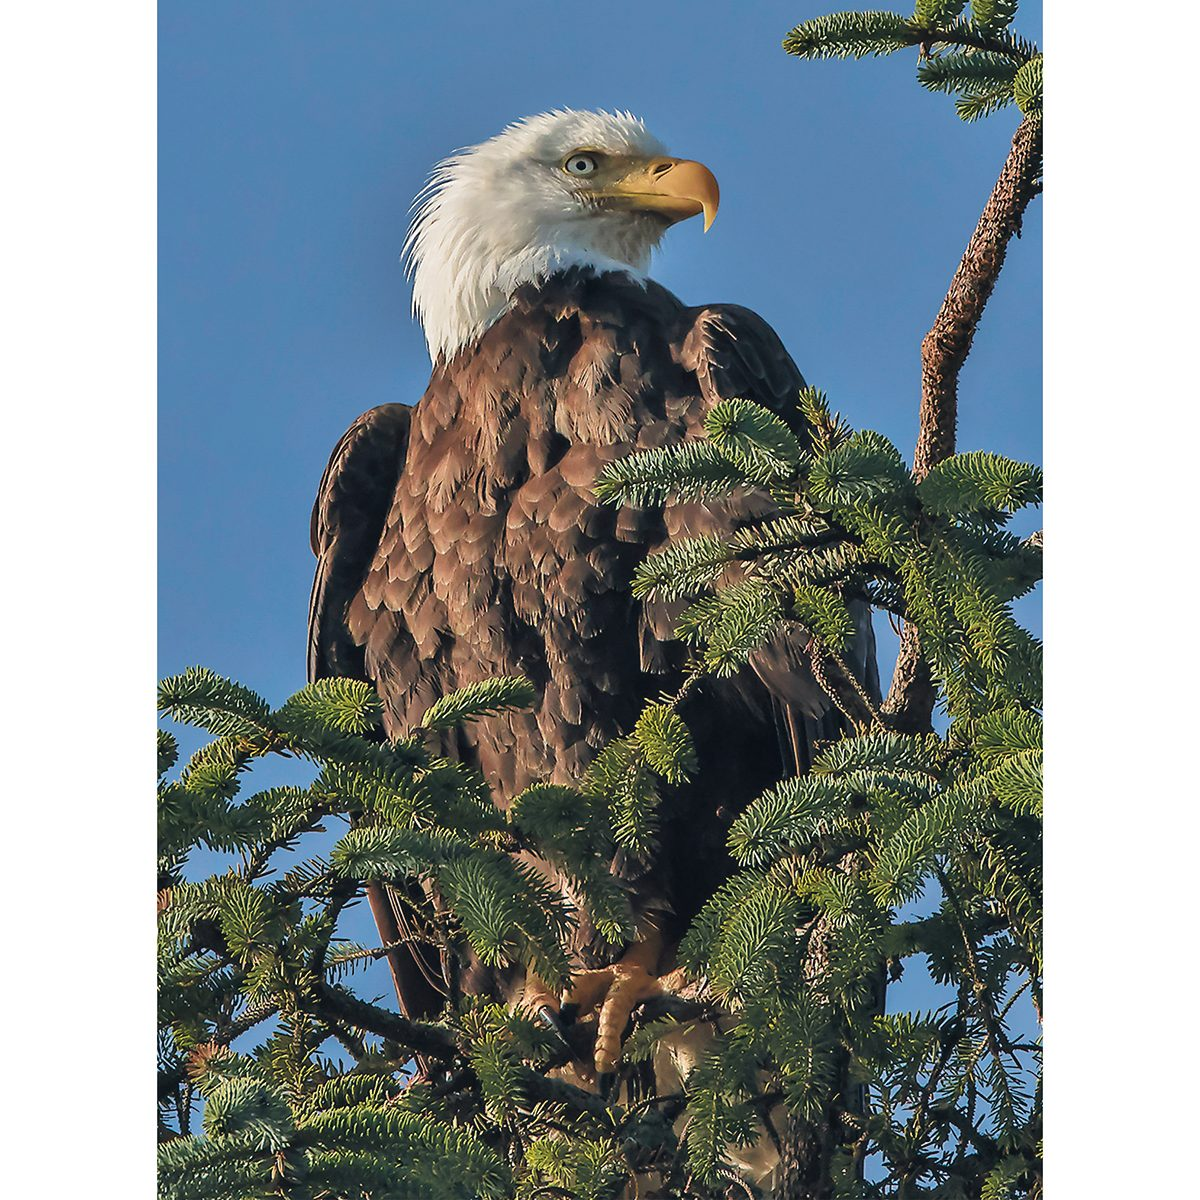 Canadian bird stories - bald eagle